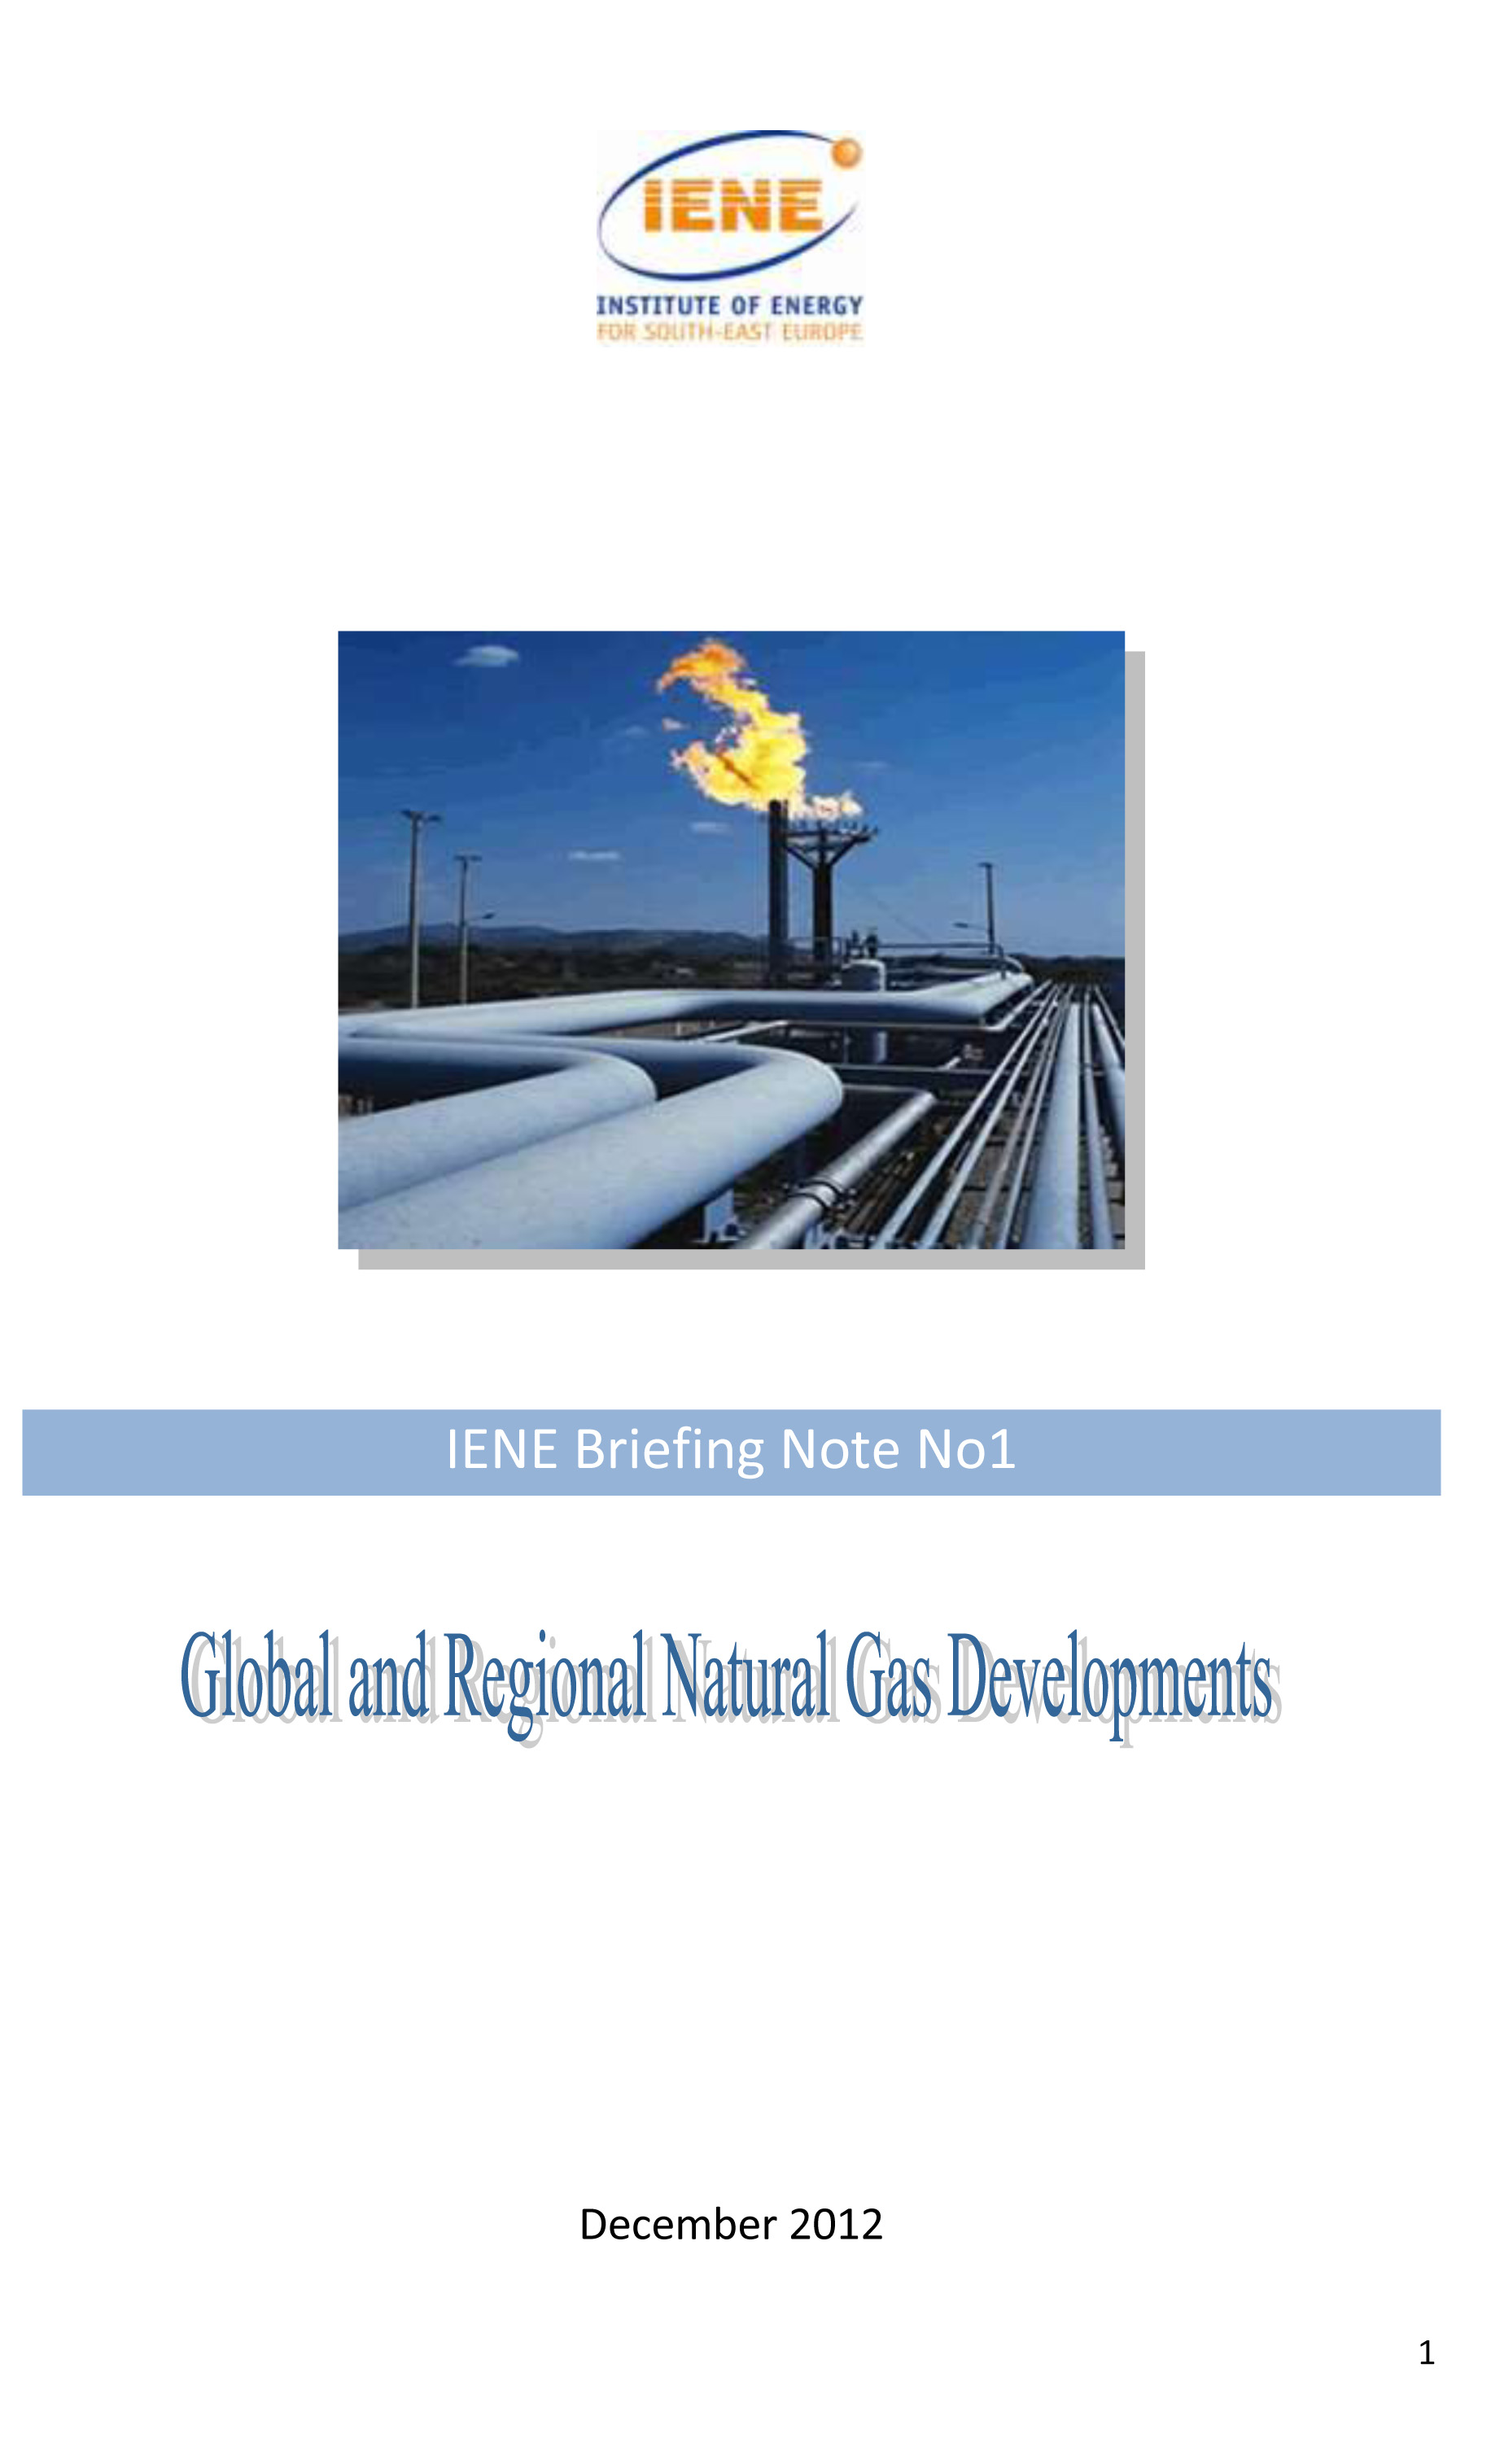 IENE-Briefing-Note-No1-Global-and-Regional-Natural-Gas-Developments